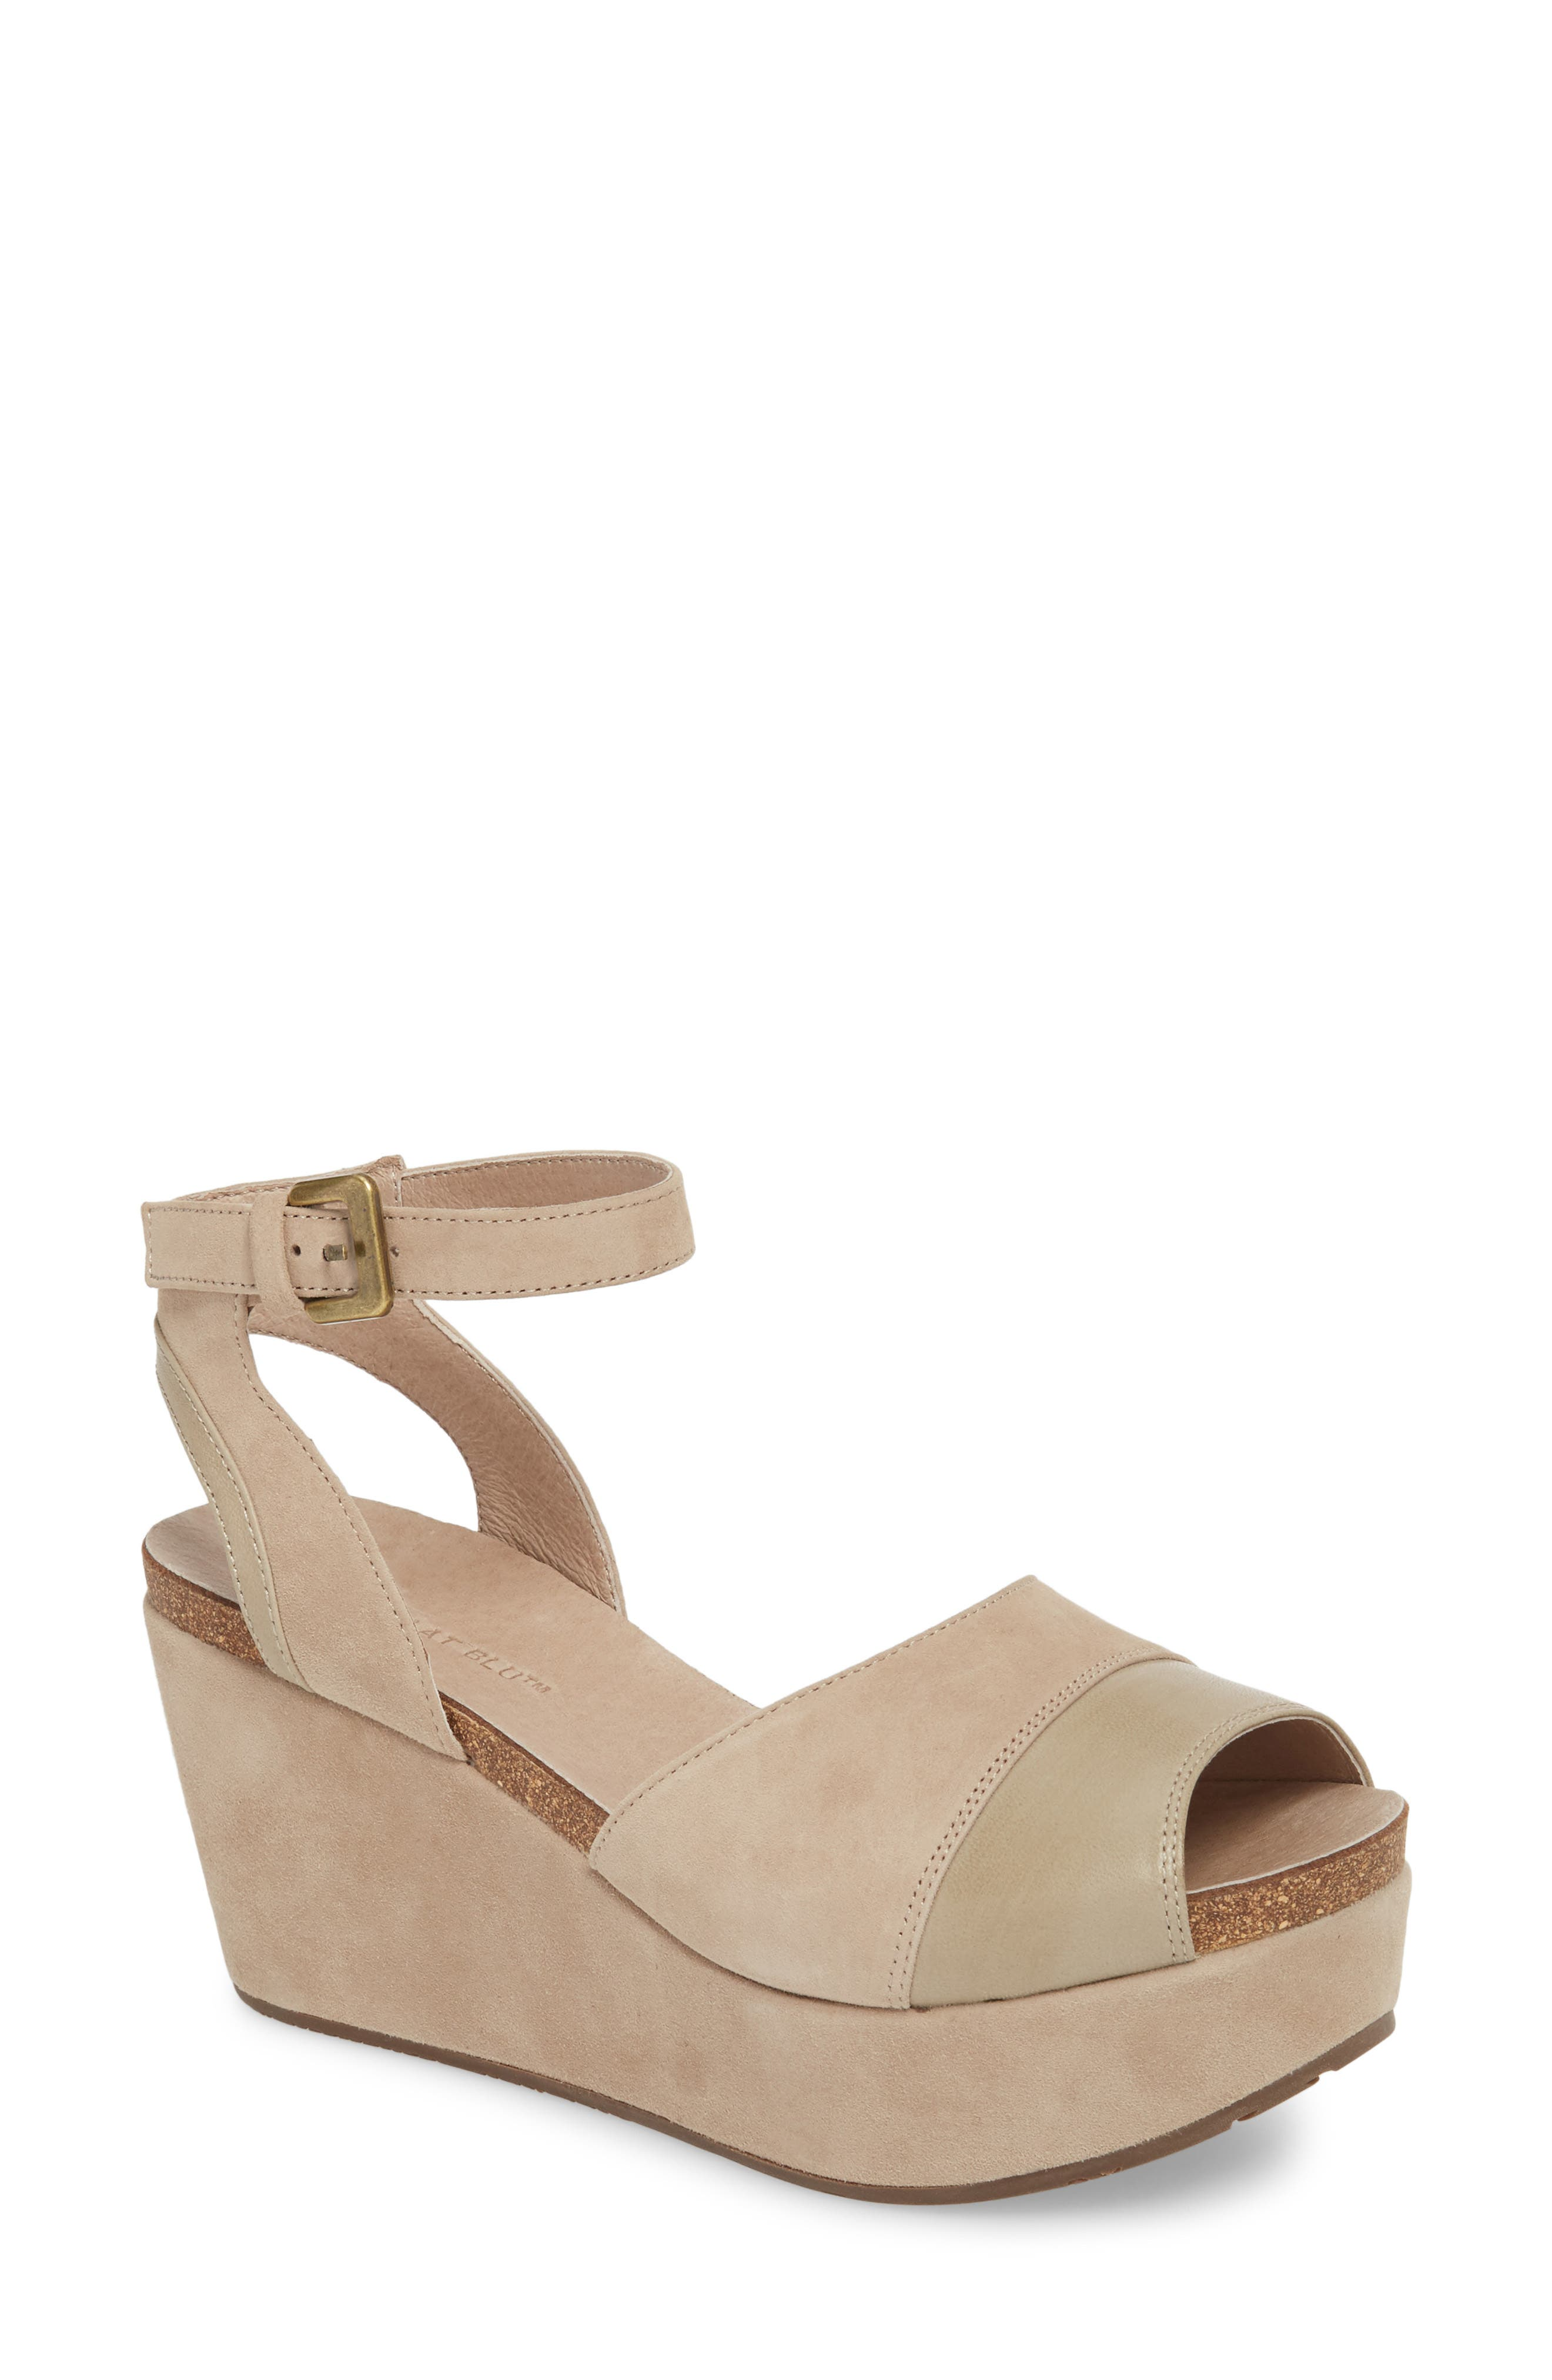 Chocolate Blu Welby Ankle Strap Wedge Sandal,                         Main,                         color, TAUPE SUEDE